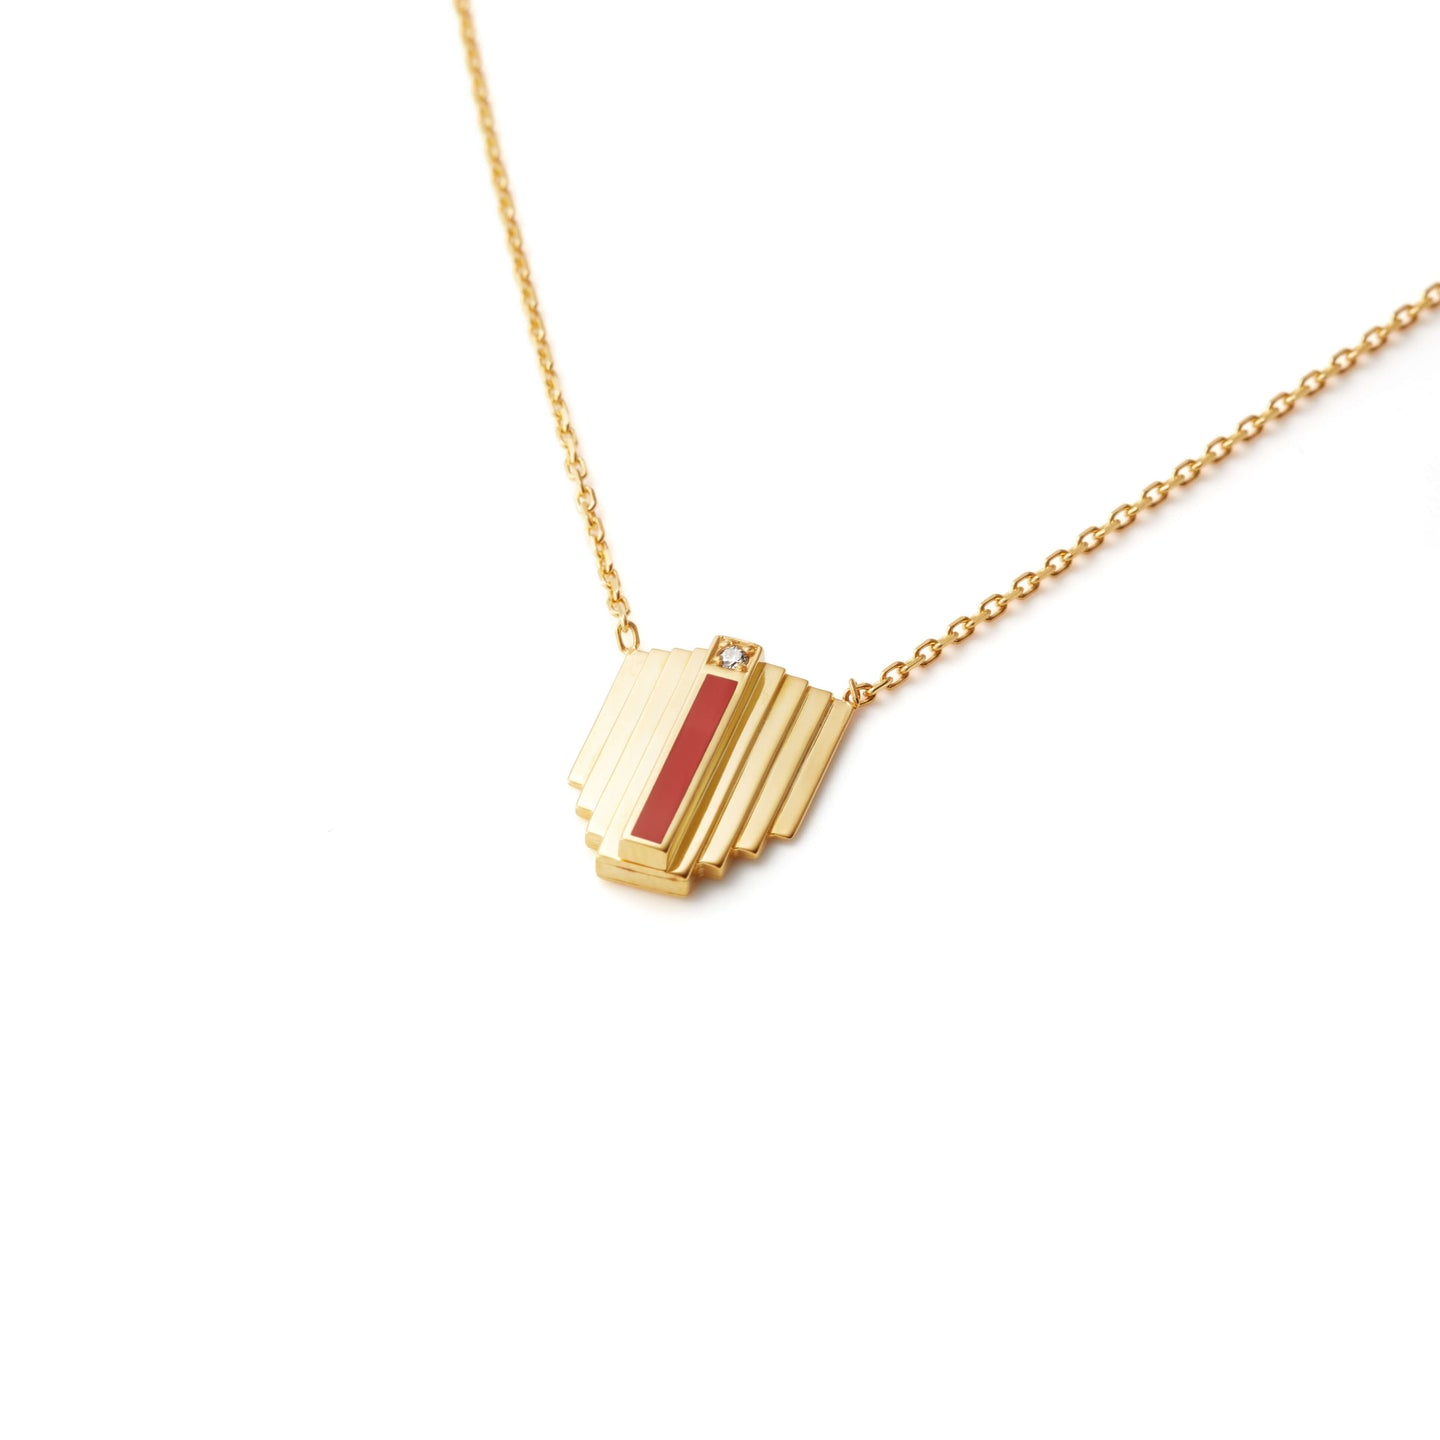 Corbusier Diamond Necklace in Gold Vermeil and Coral Enamel